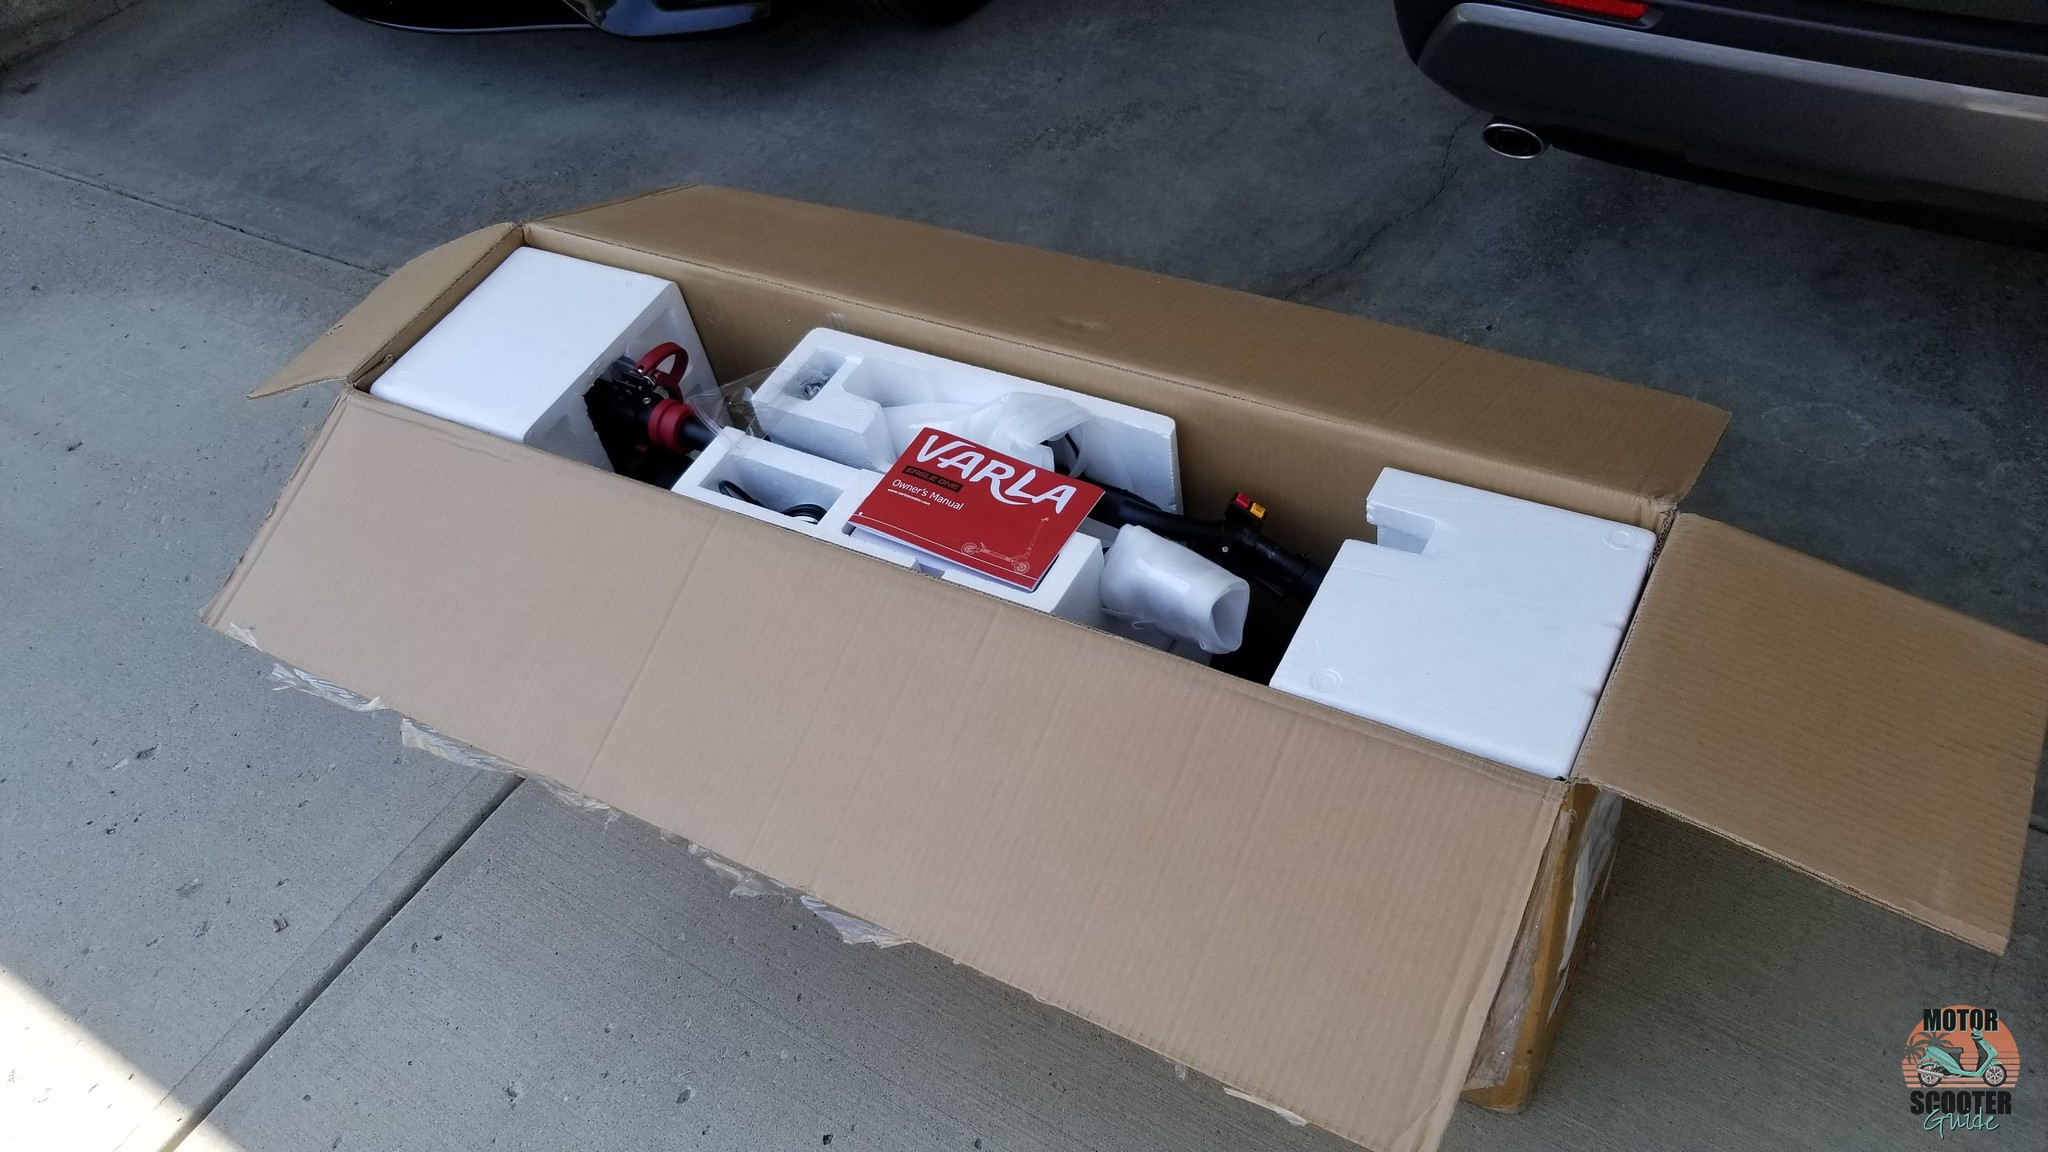 Shipping cardboard box with top open